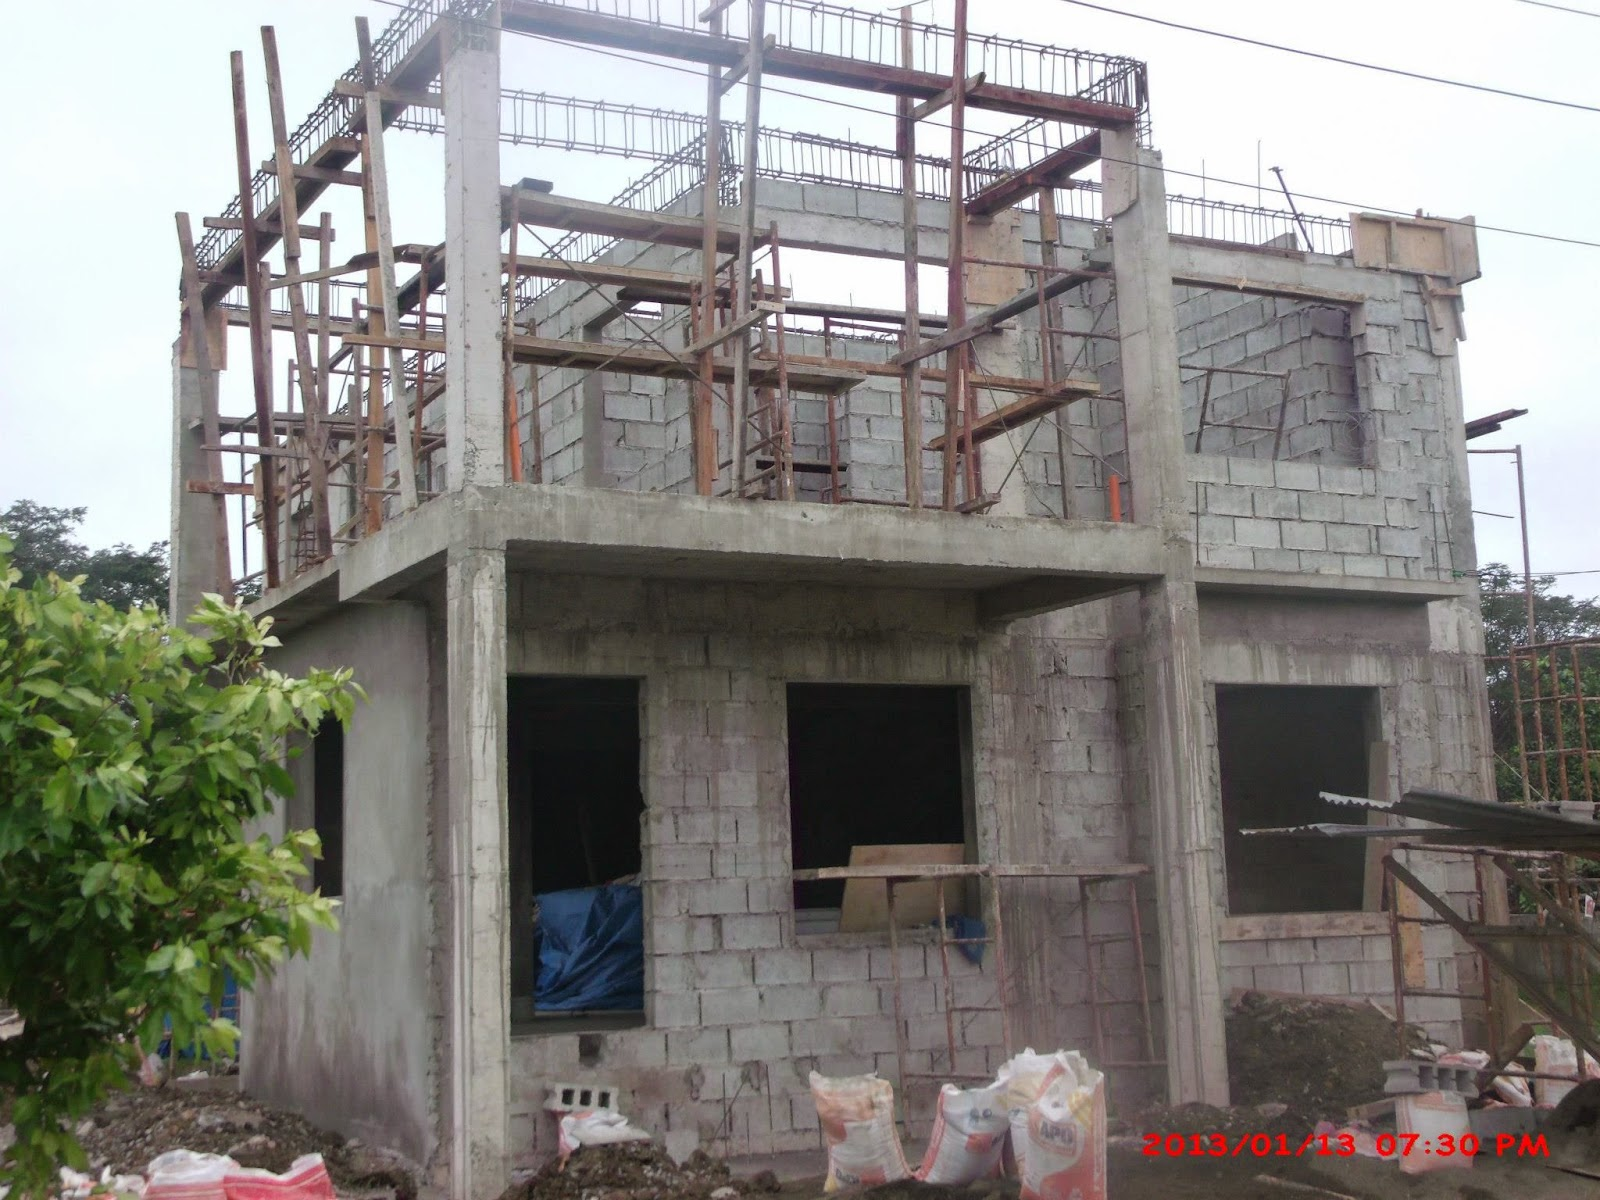 Modern contemporary house designs philippines iloilo simple 2 storey - Two Phase House Plans House Design Ideas